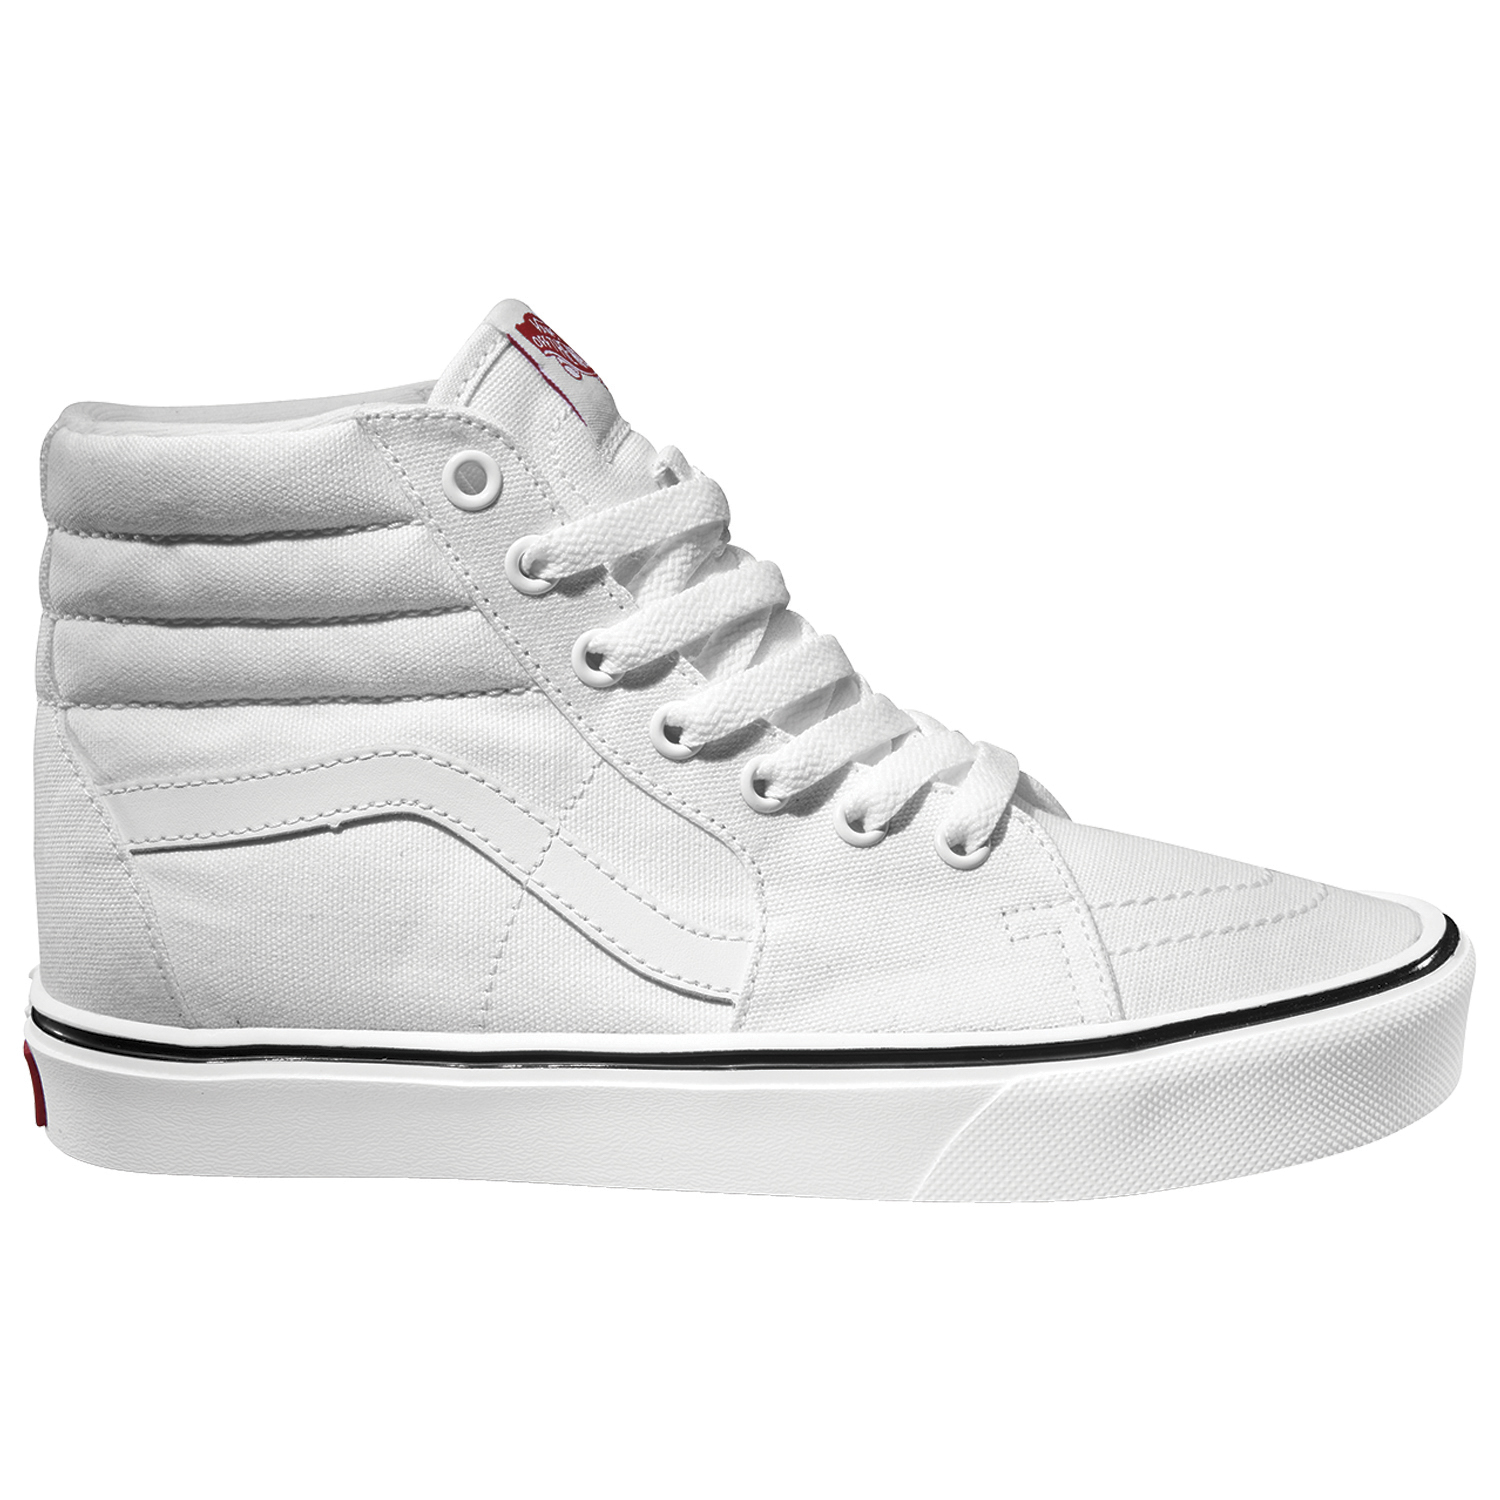 vans-sk8-hi-lite-canvas-true-white-159-90